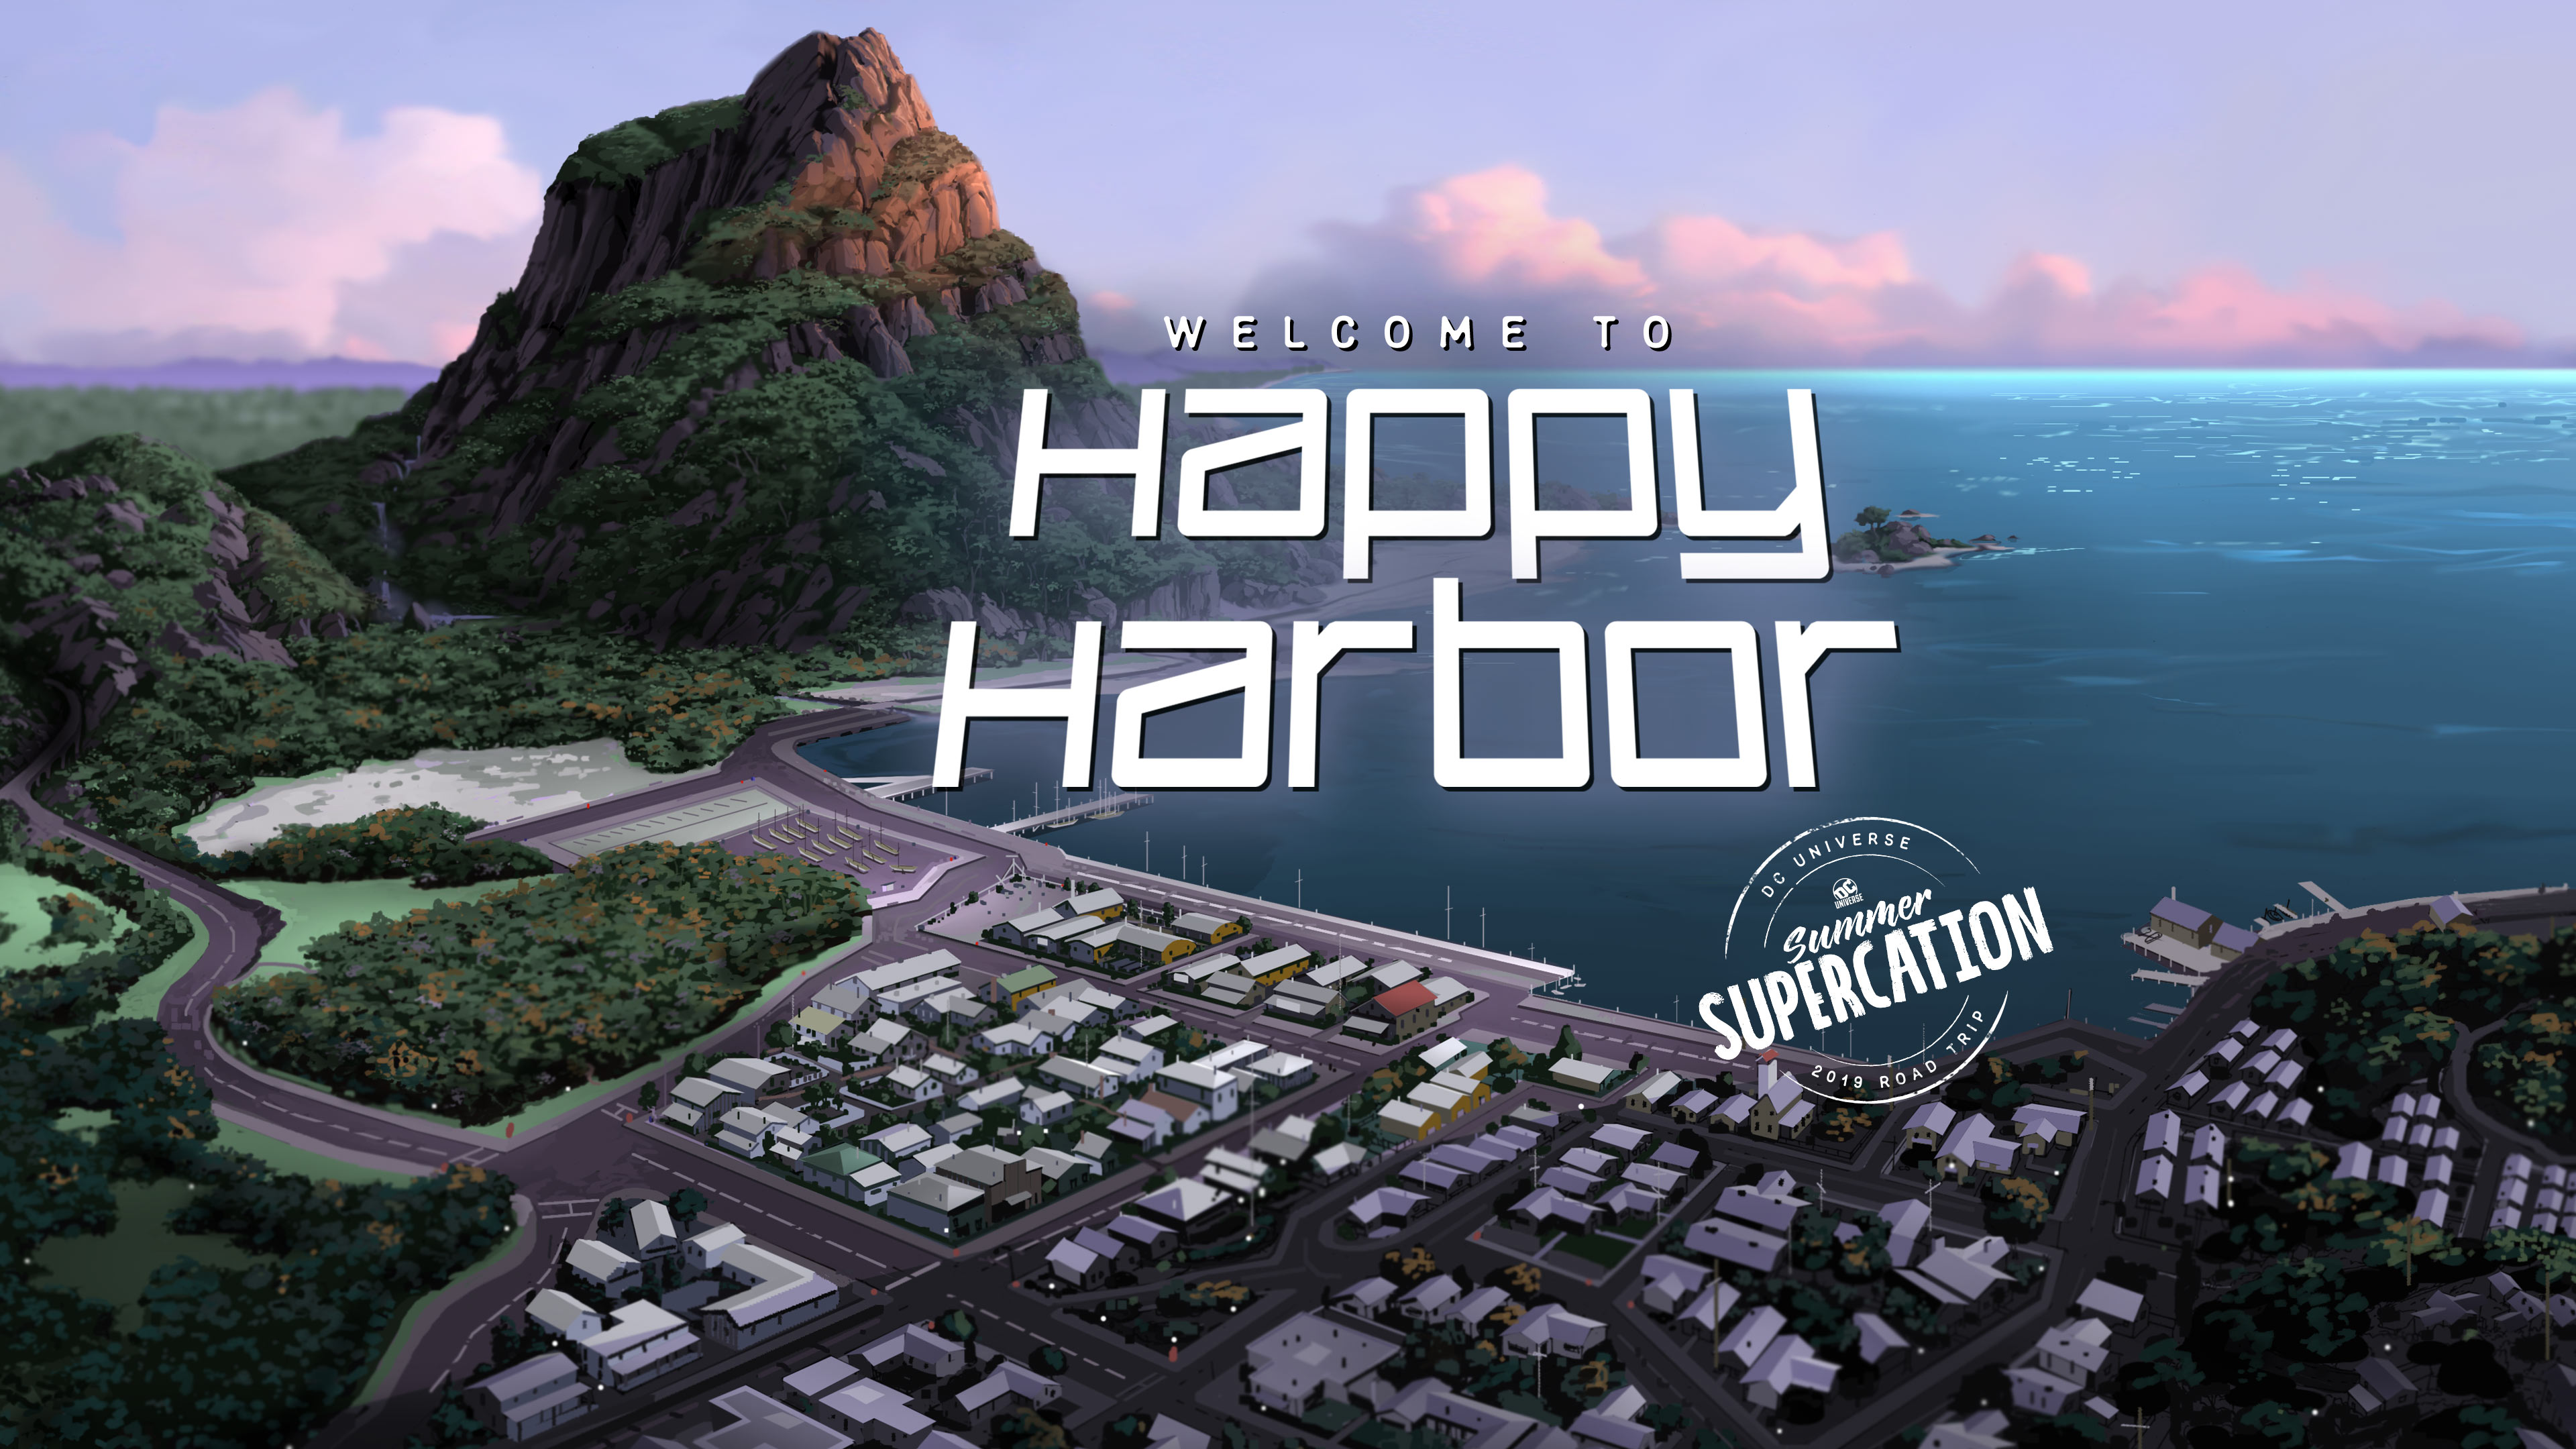 summer-supercation-happyharbor-hero-c-v1.jpg